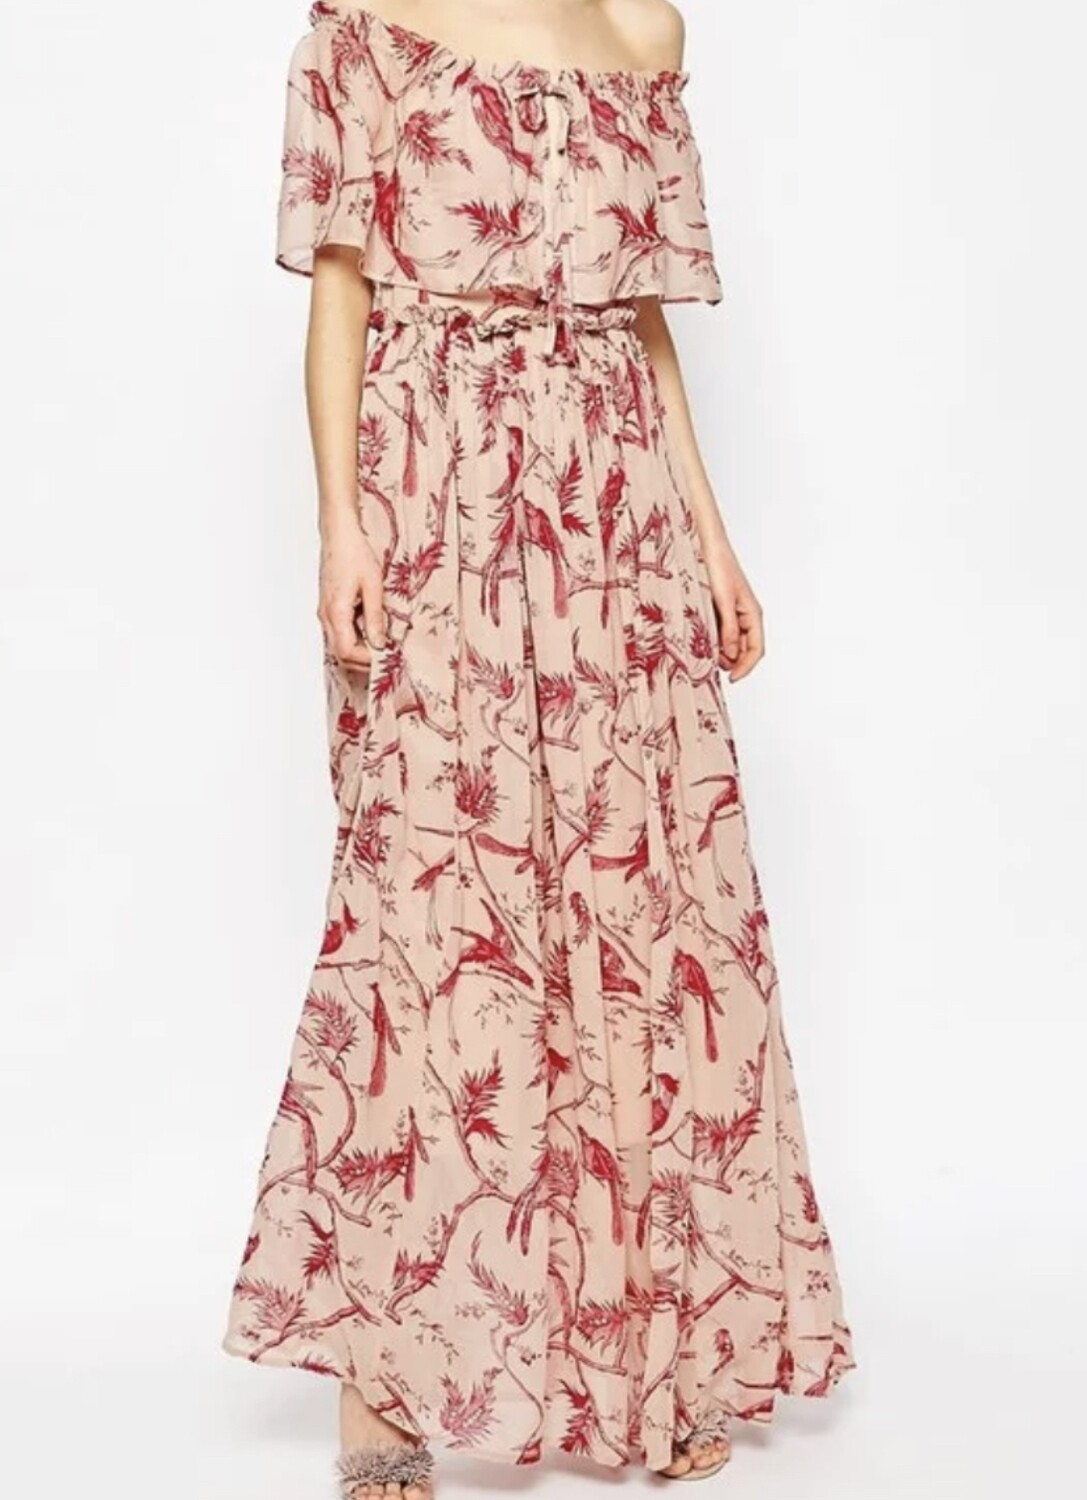 ASOS Nude Red Bird Off-The-Shoulder Maxi Dress 6